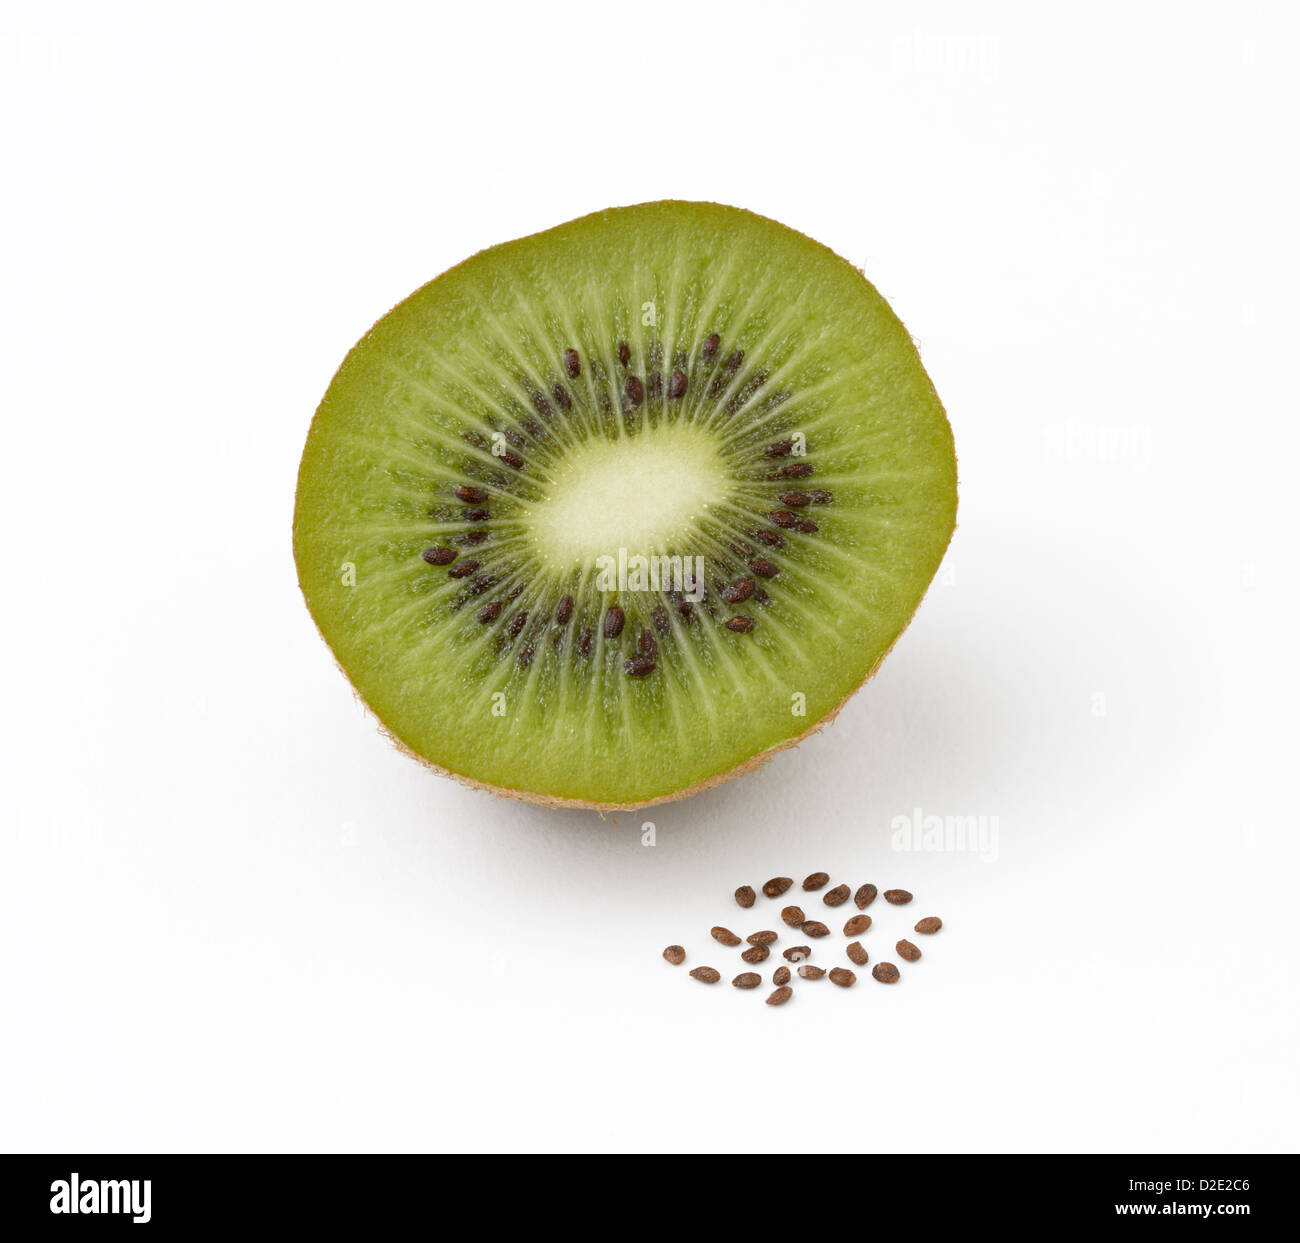 Kiwifruit, Actinidia deliciosoa, sliced open showing the seeds inside and with a pile of seeds in front - Stock Image